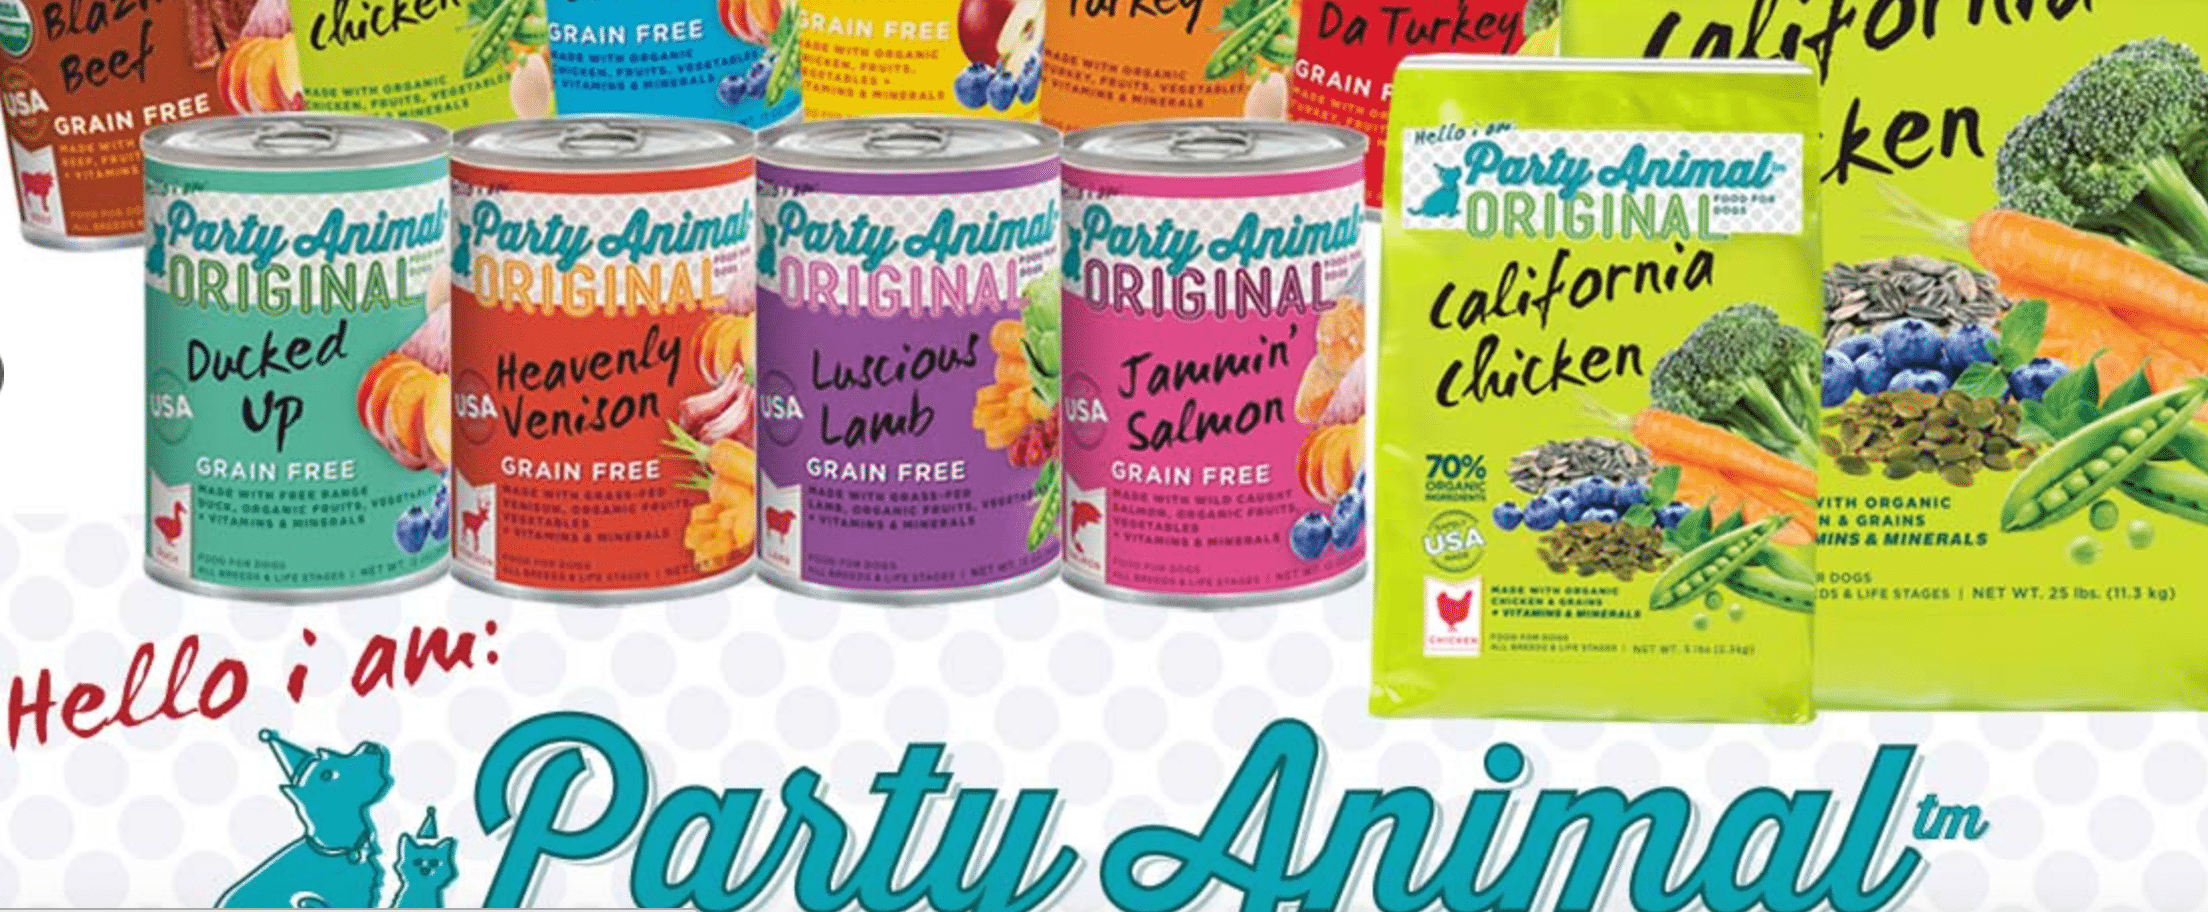 Cocolicious Dog Foods Tested Positive For Pentobarbital